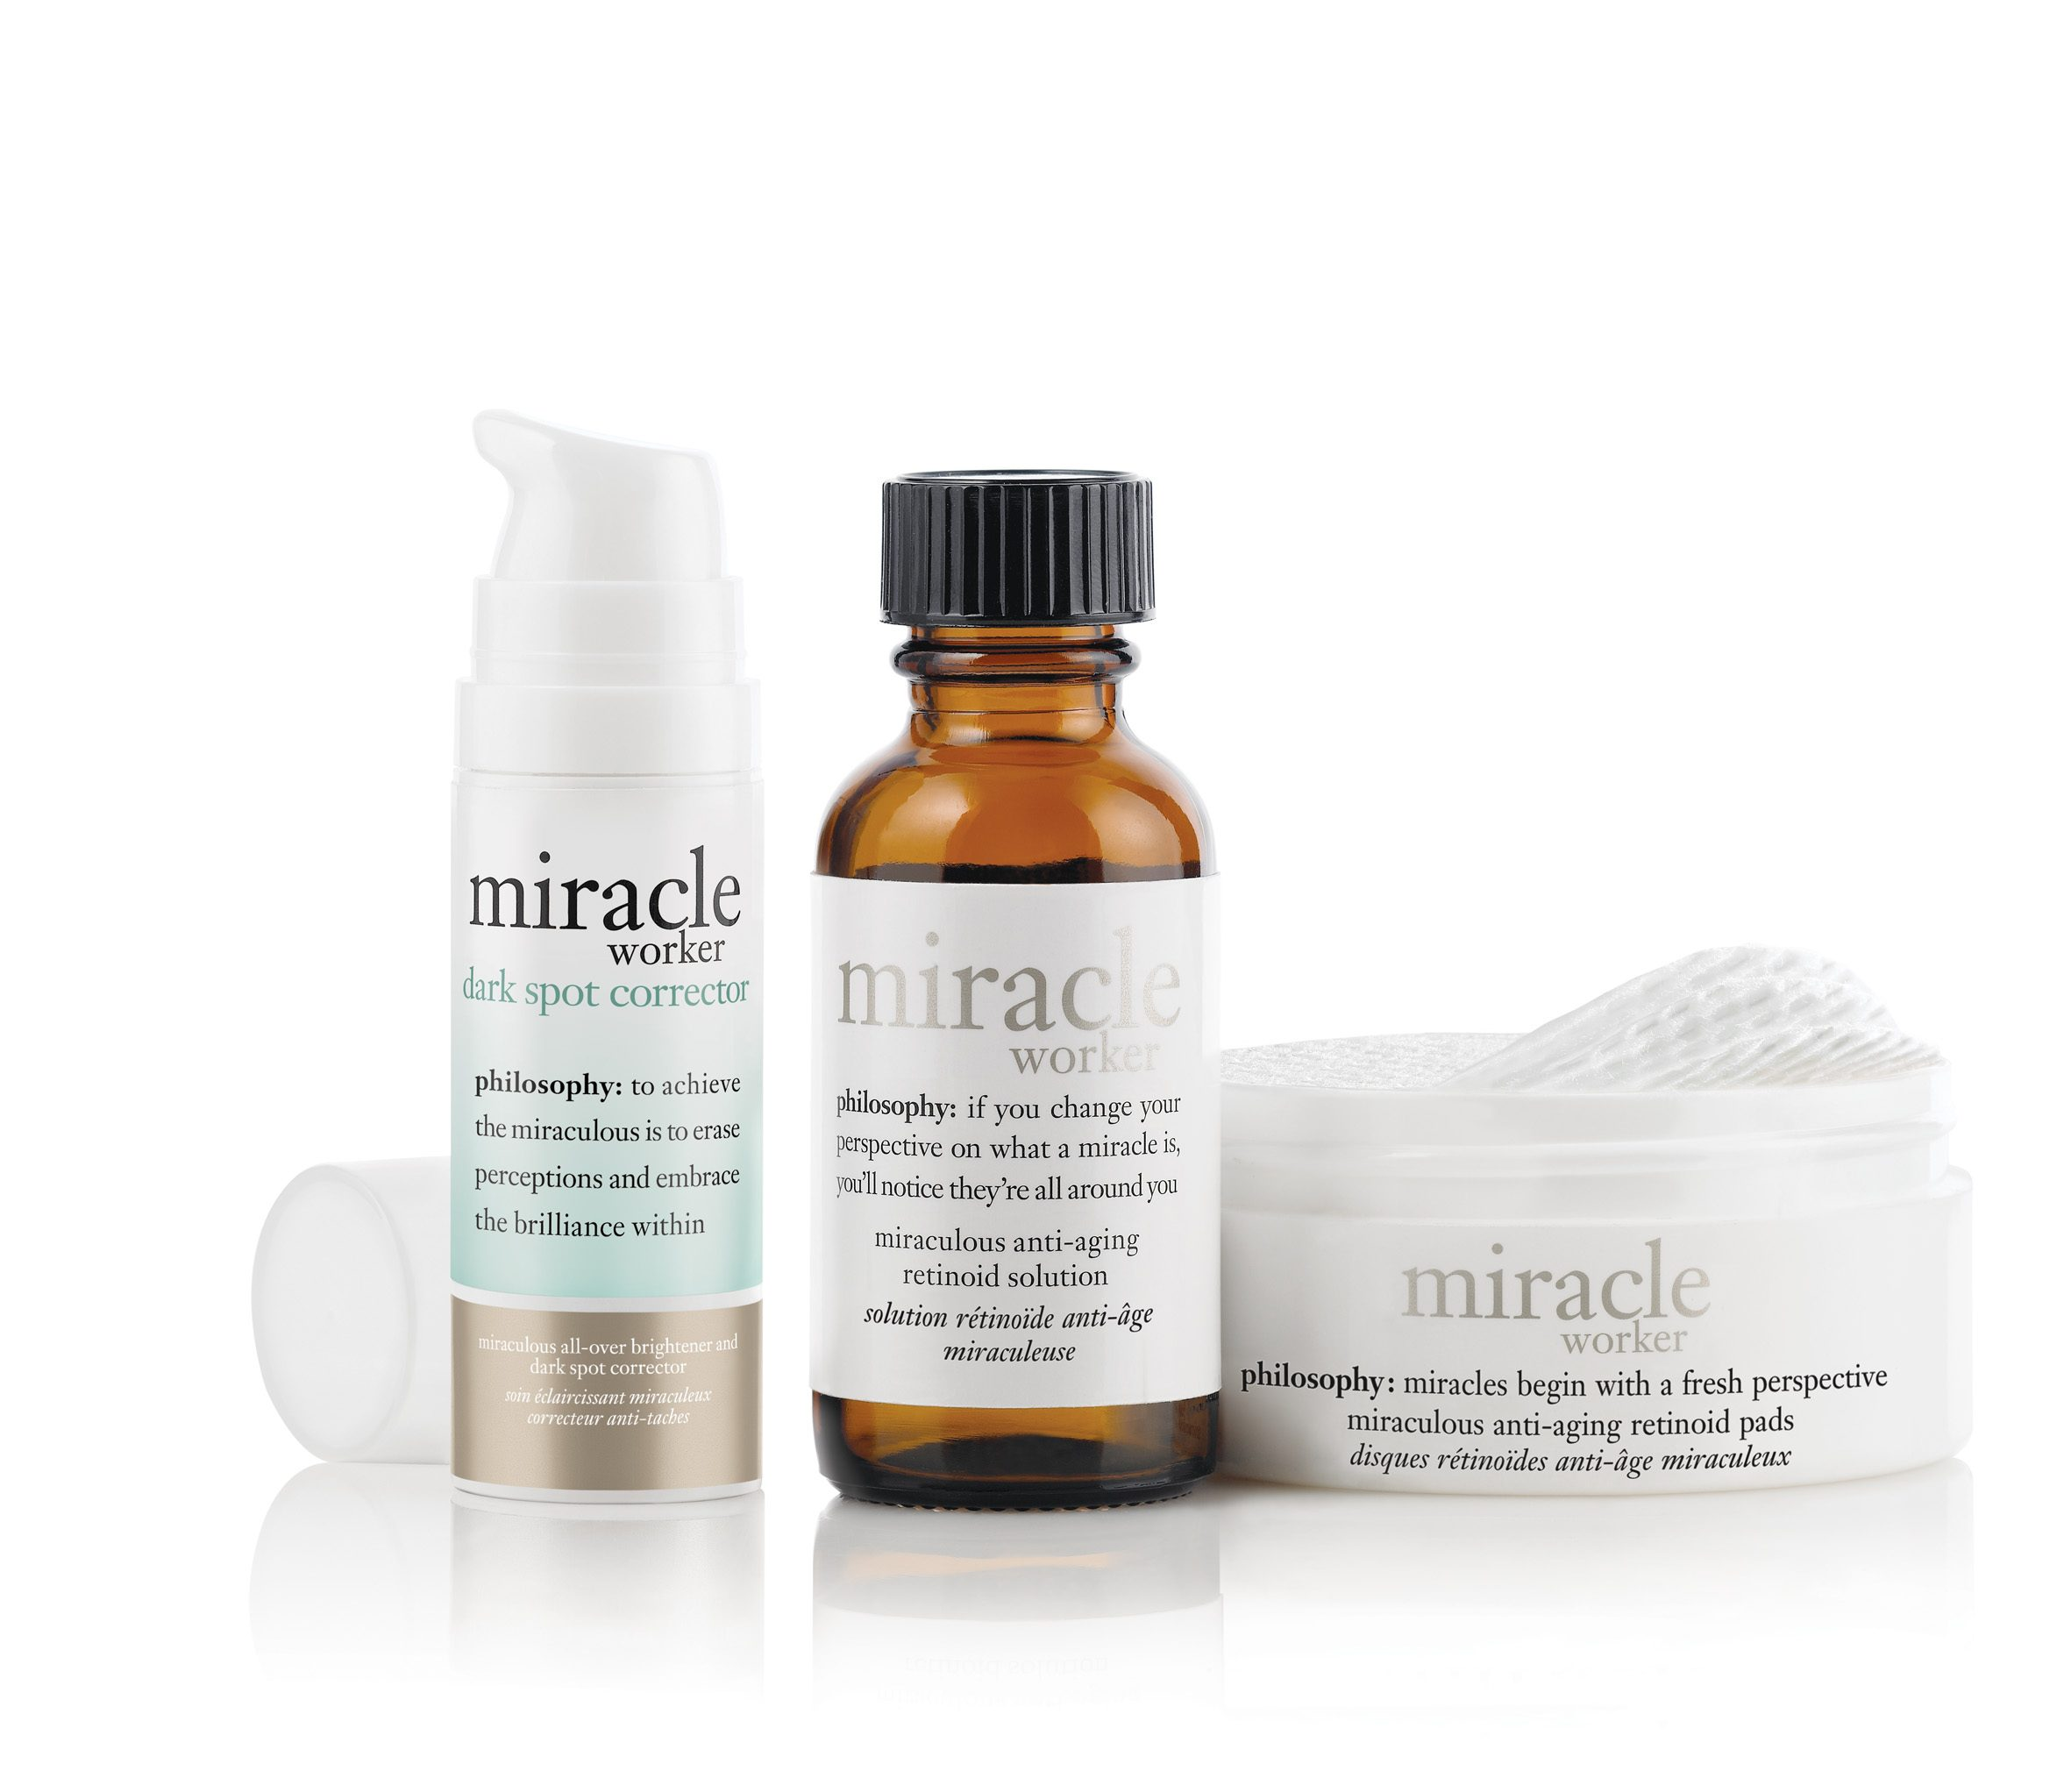 miracle worker dark spot correcting system (2)